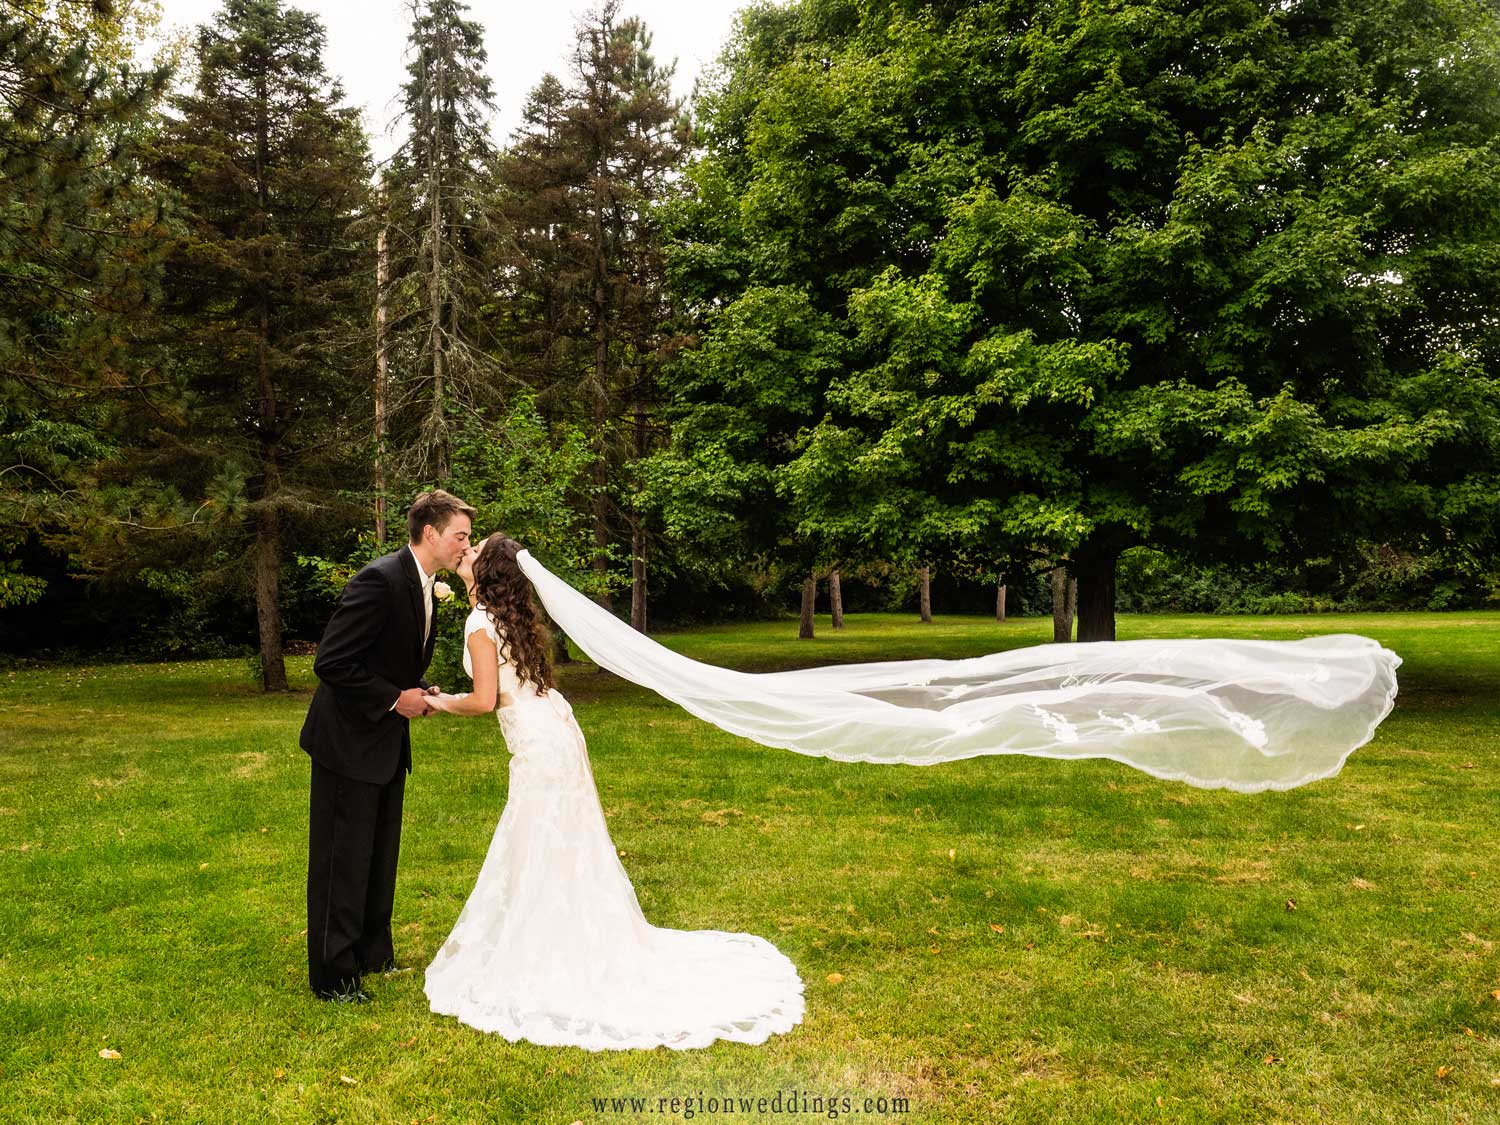 The veil floats on air as the bride and groom kiss.